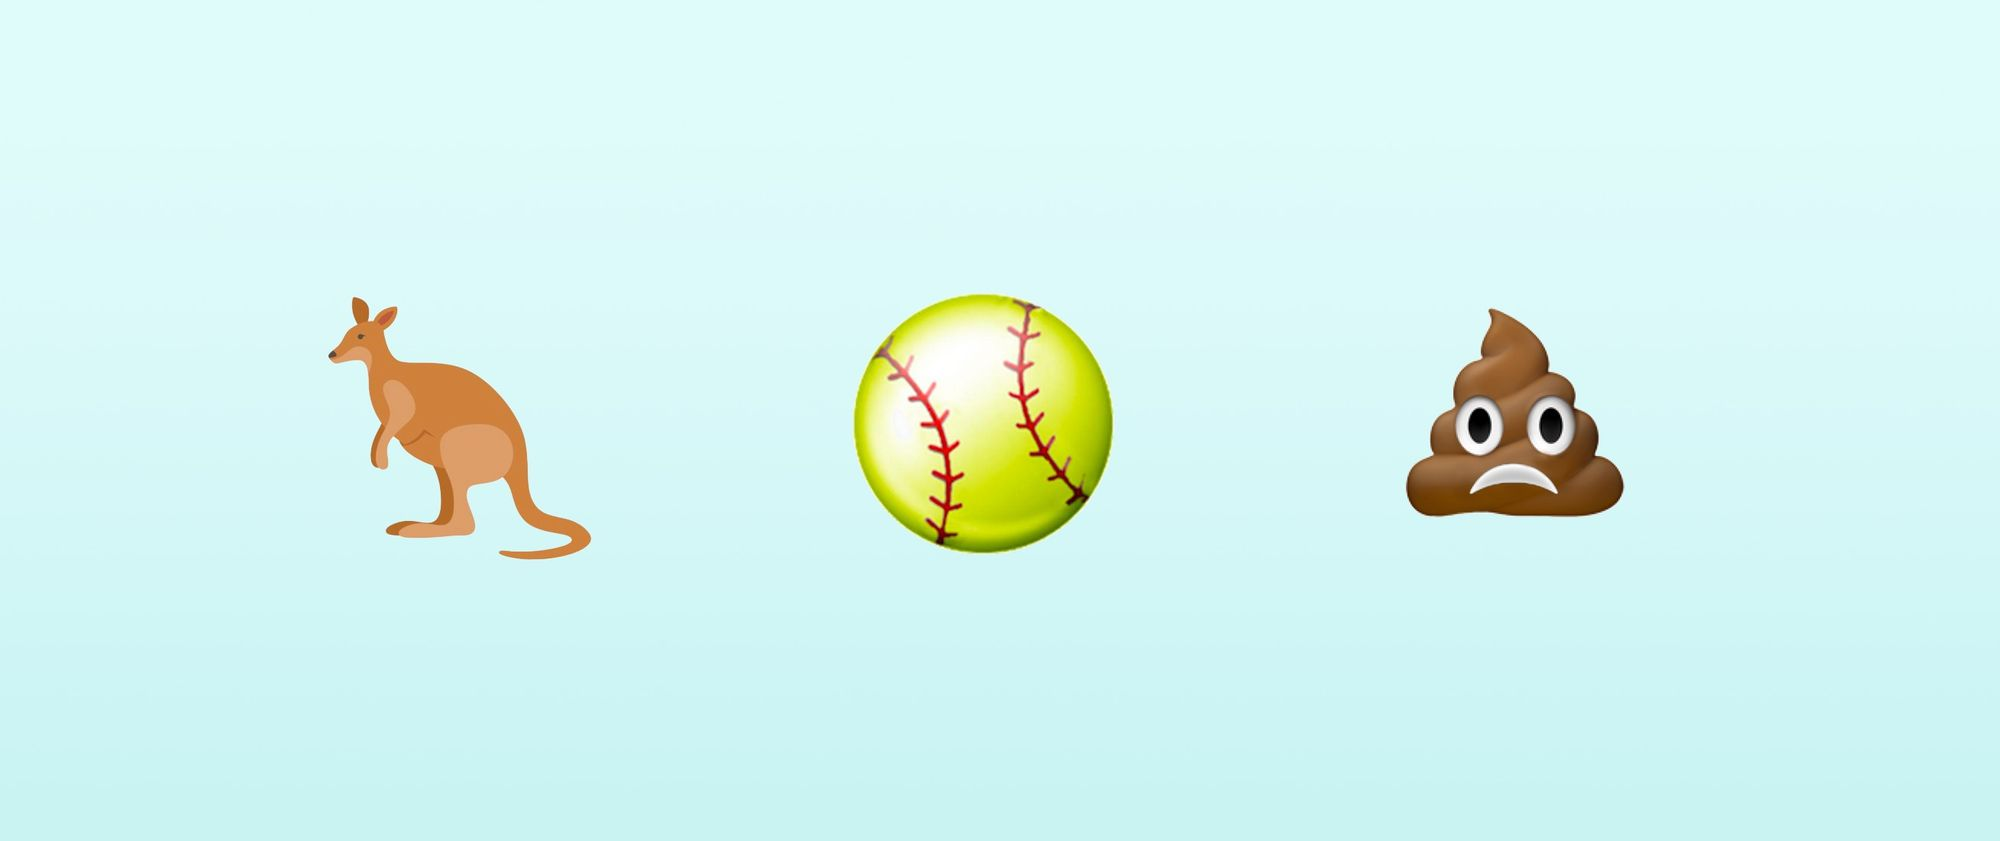 Kangaroo, Softball, Frowning Poo Emojis Possible For 2018